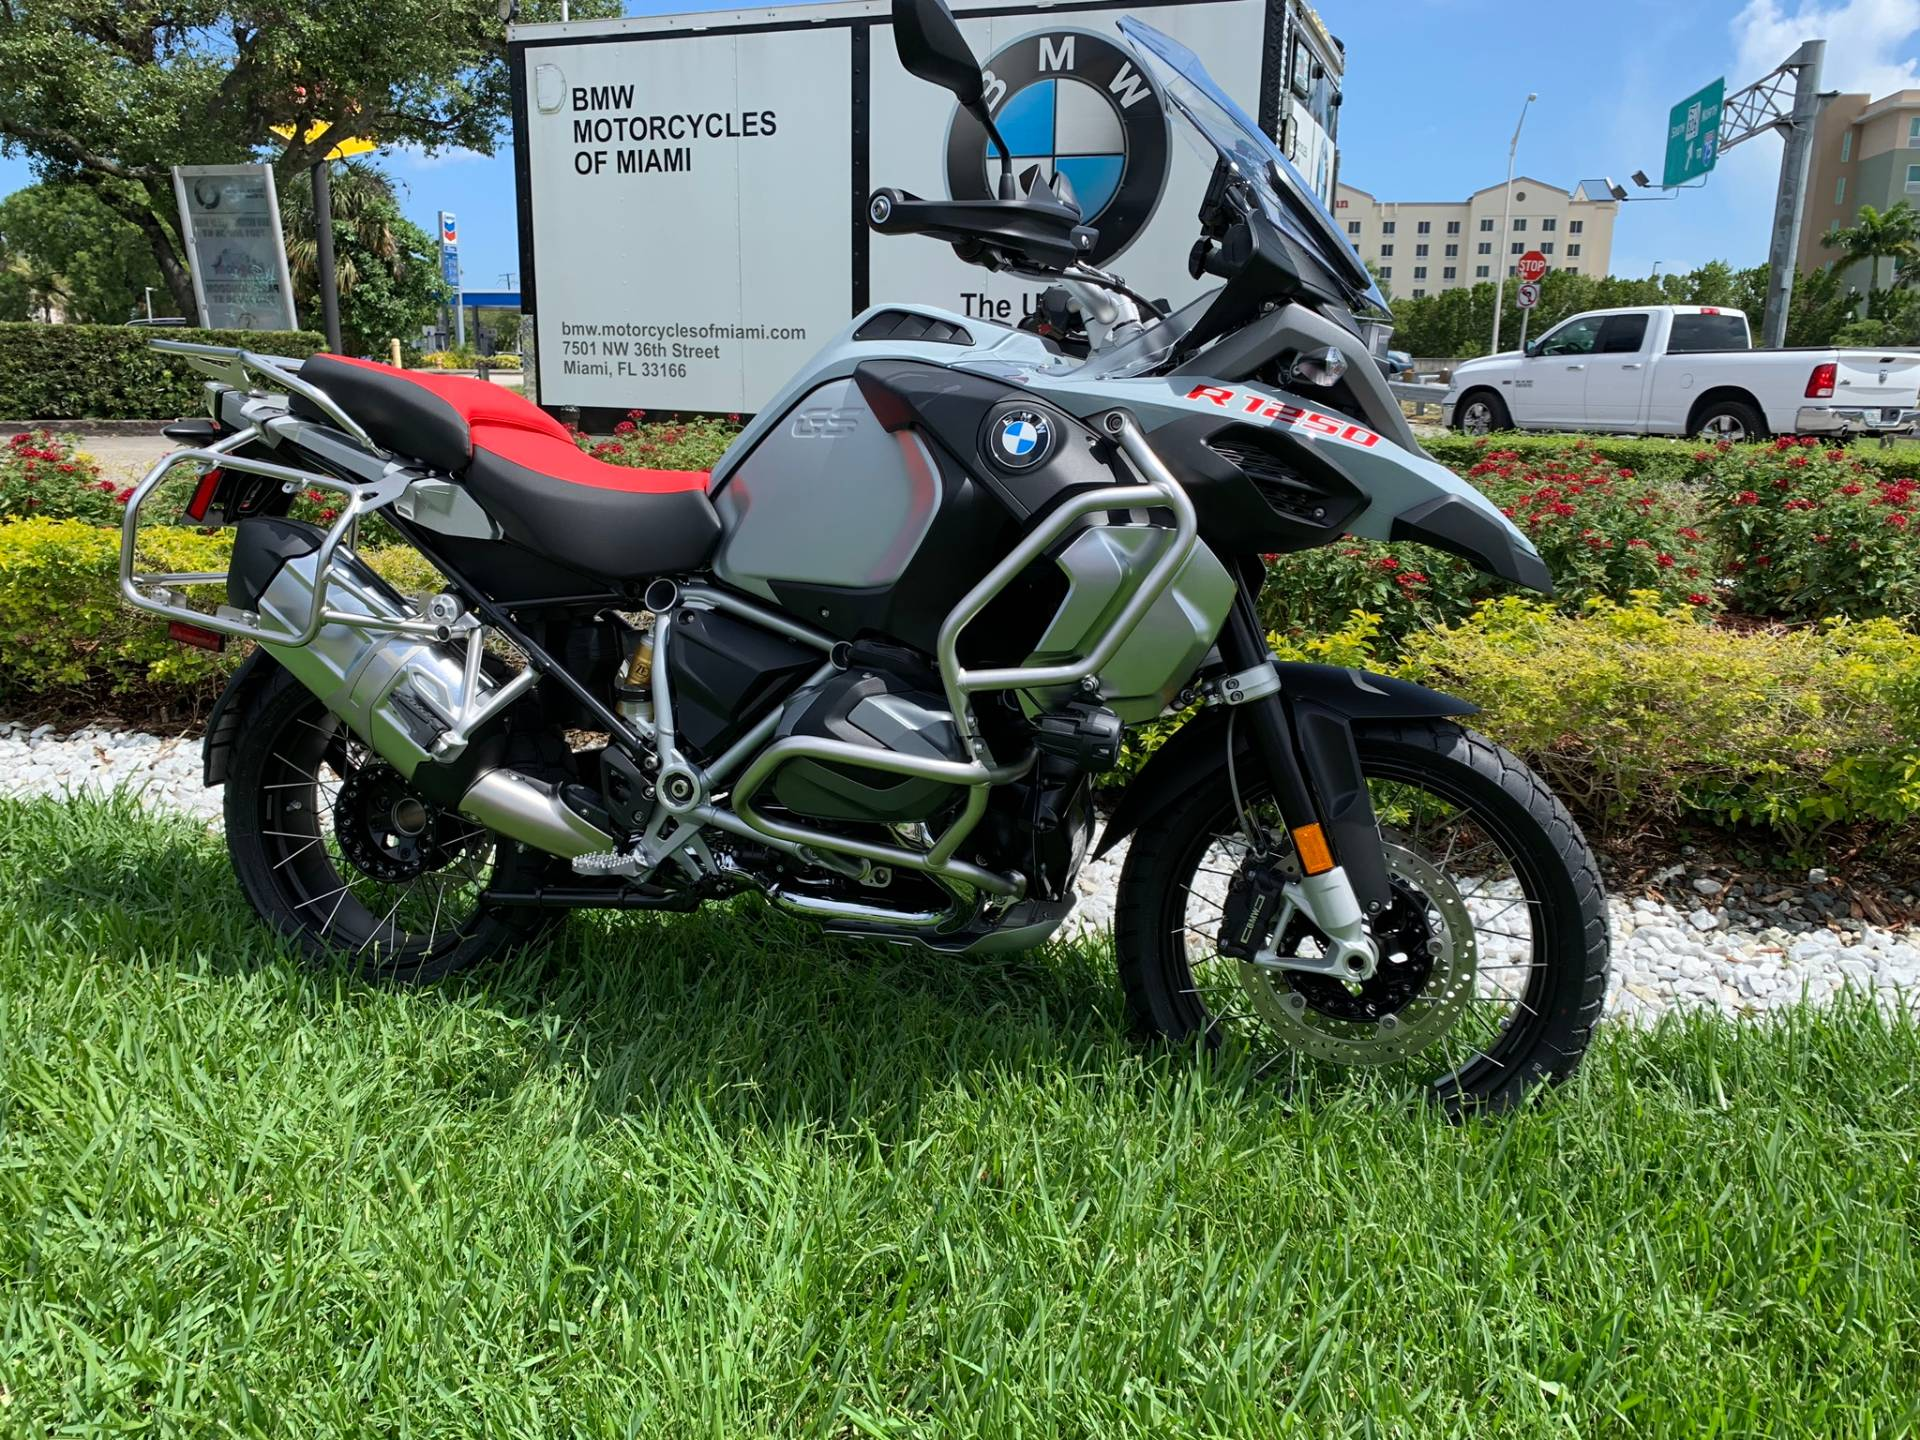 New 2019 BMW R 1250 GSA for sale, New BMW for sale R 1250GSA, New BMW Motorcycle R1250GSA for sale, new BMW 1250GS Adventure, R1250GS Adventure, Adventure. BMW Motorcycles of Miami, Motorcycles of Miami, Motorcycles Miami, New Motorcycles, Used Motorcycles, pre-owned. #BMWMotorcyclesOfMiami #Motorcy - Photo 28